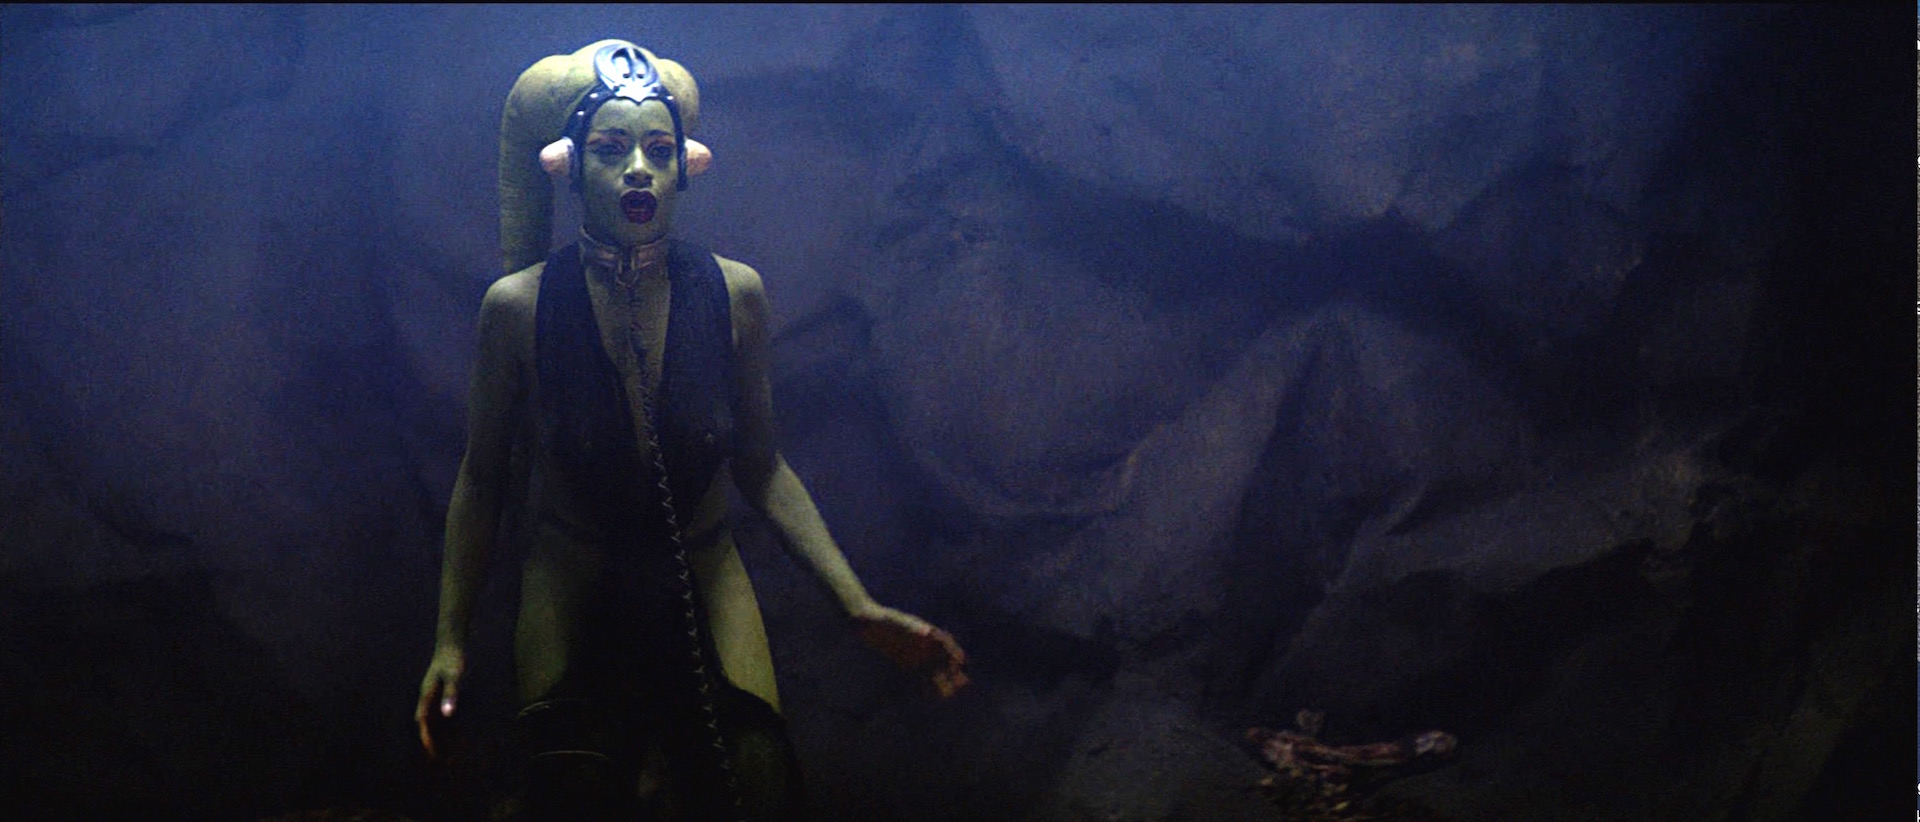 Much to Learn You Still Have: 7 Things You Might Not Know About Twi'leks